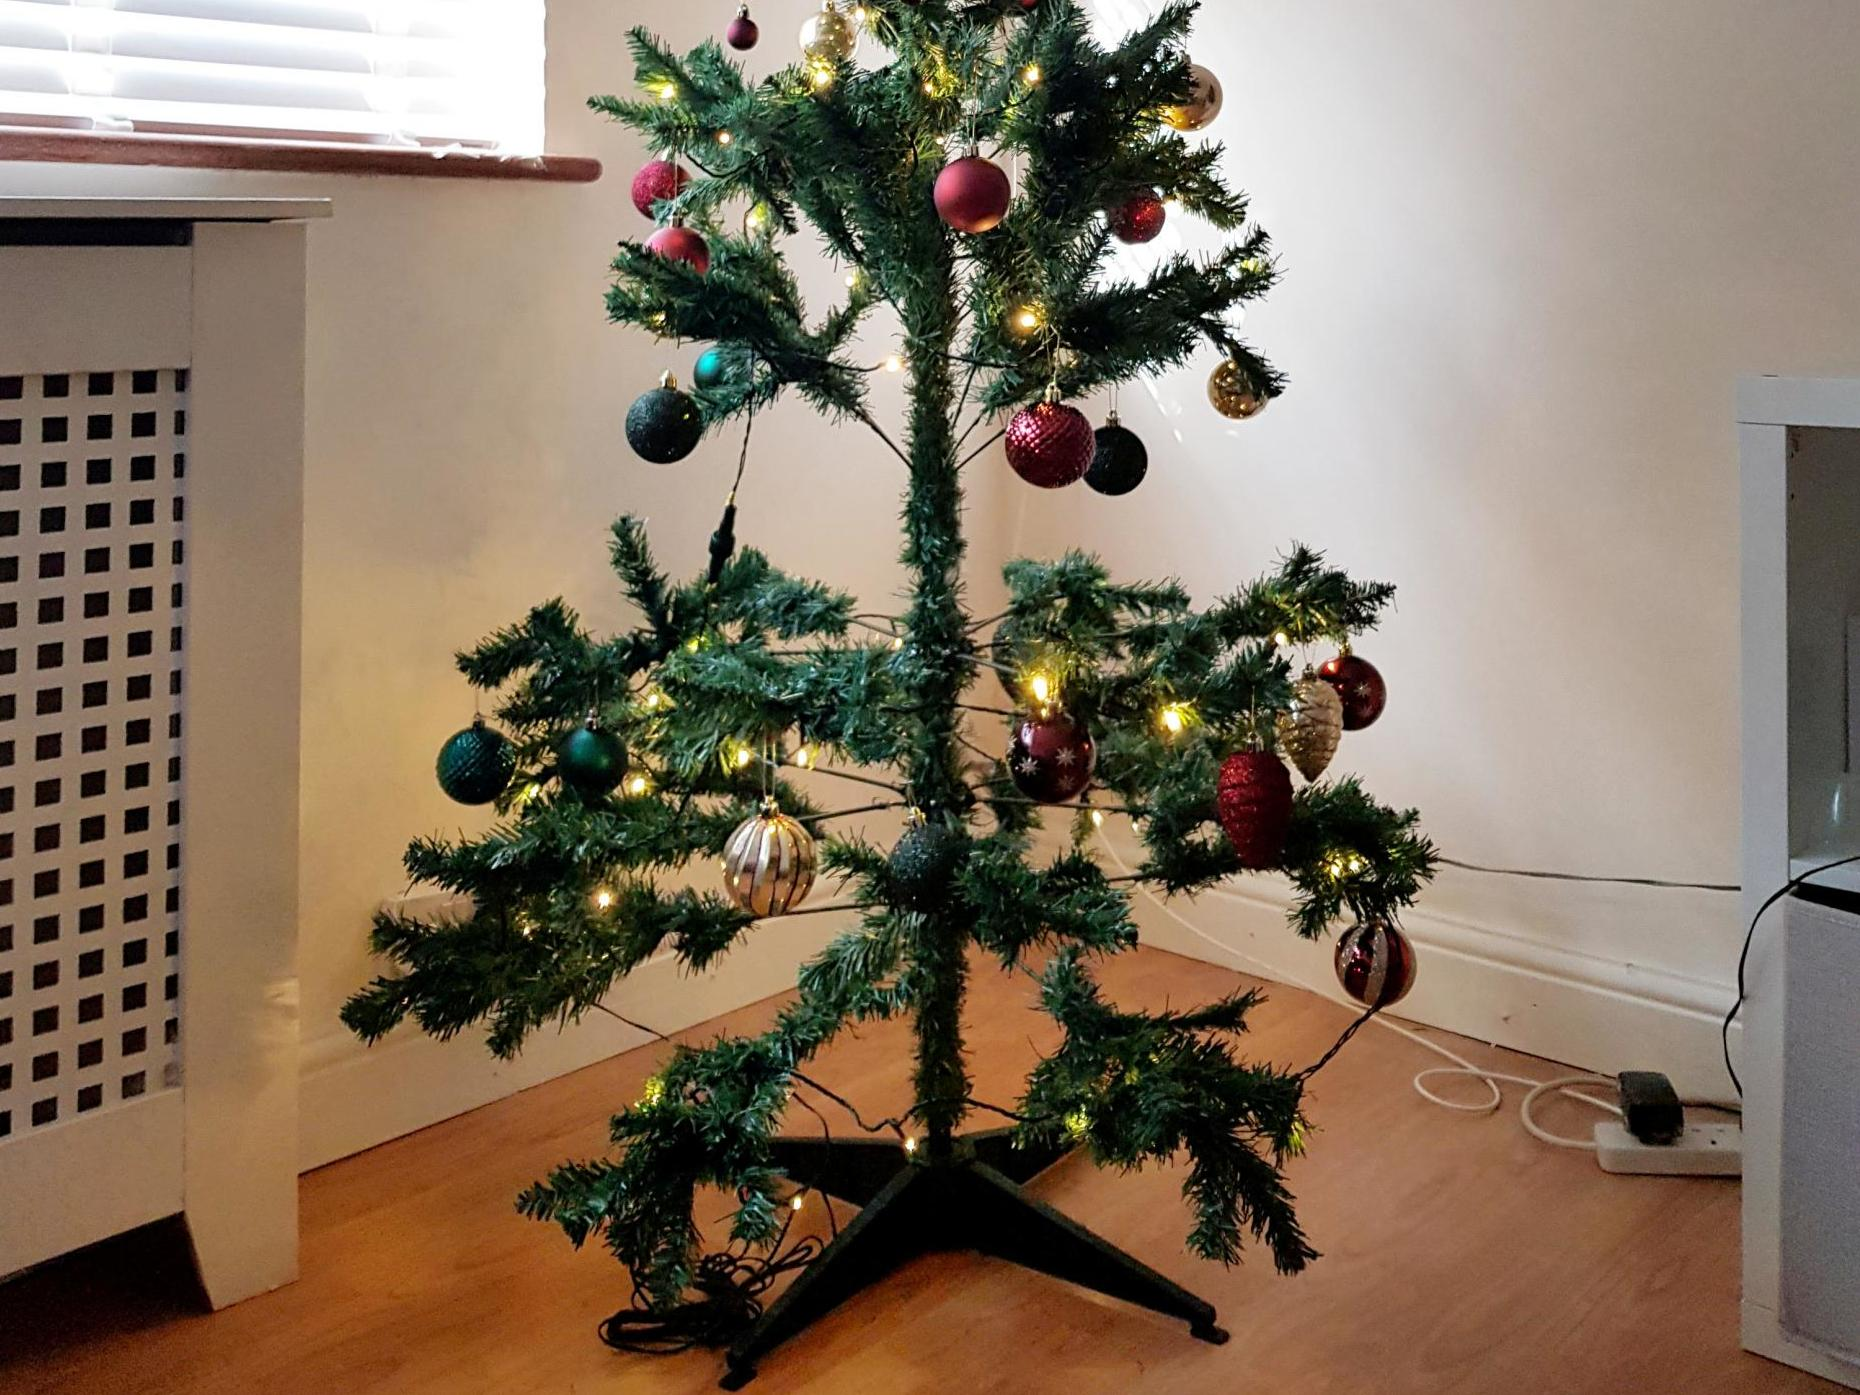 Mum accuses Marks & Spencer of false advertising after buying 'awful' Christmas tree online